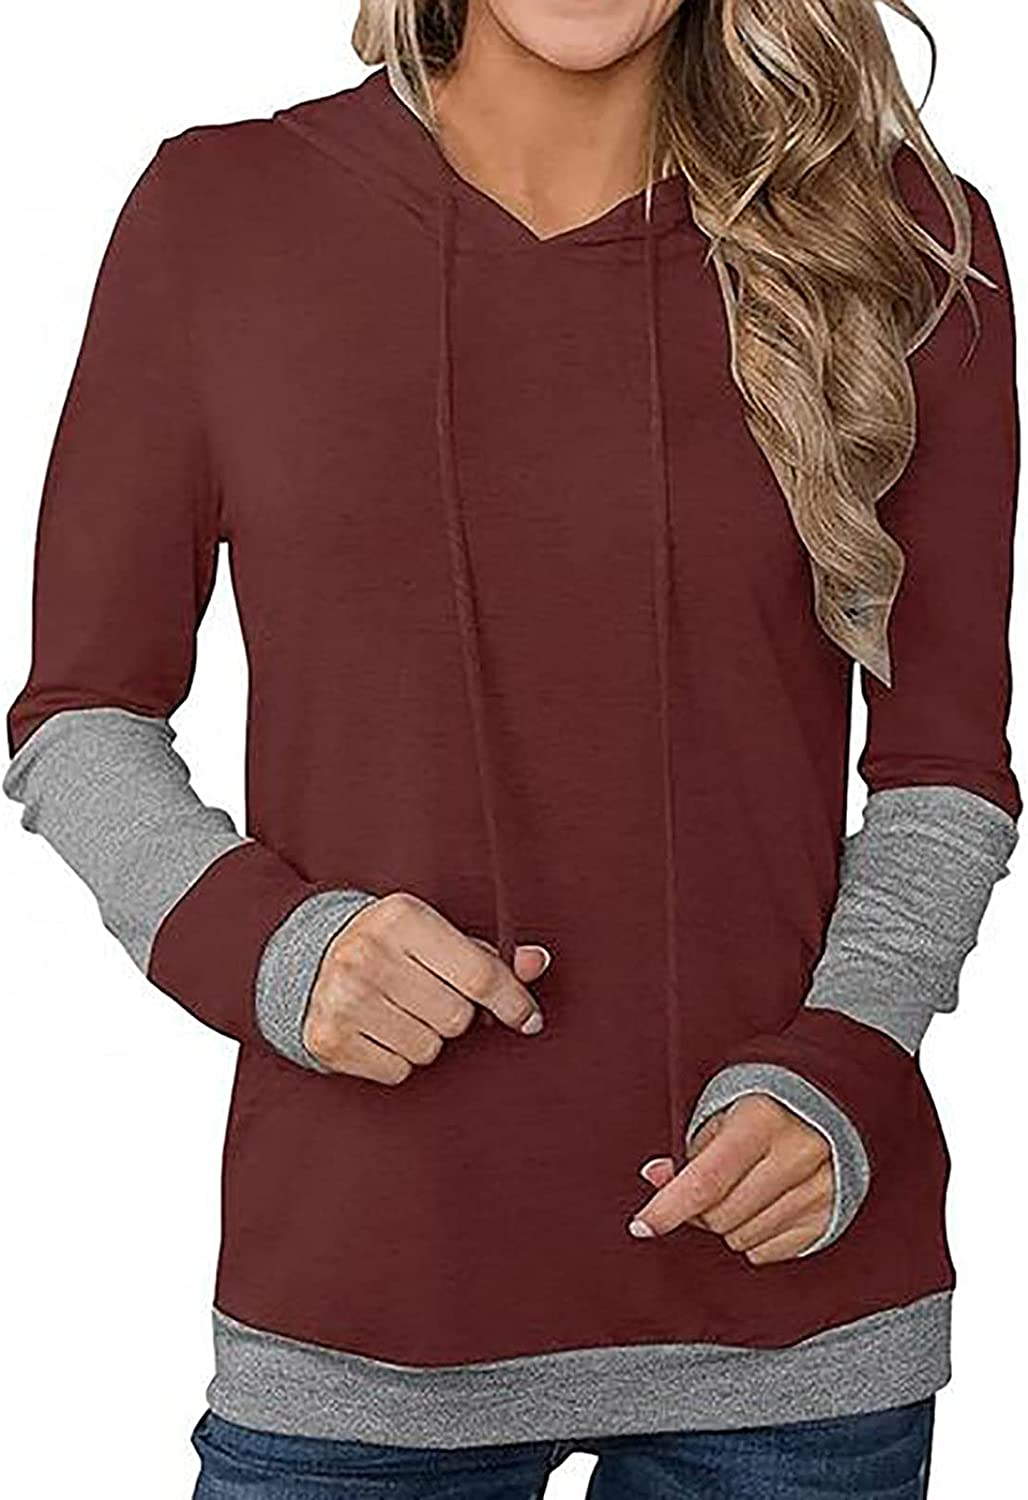 Womens Color Block Hoodie Sweatshirts Autumn Loose Solid Tunic Pullover Tops Long Sleeve Drawstring Shirts